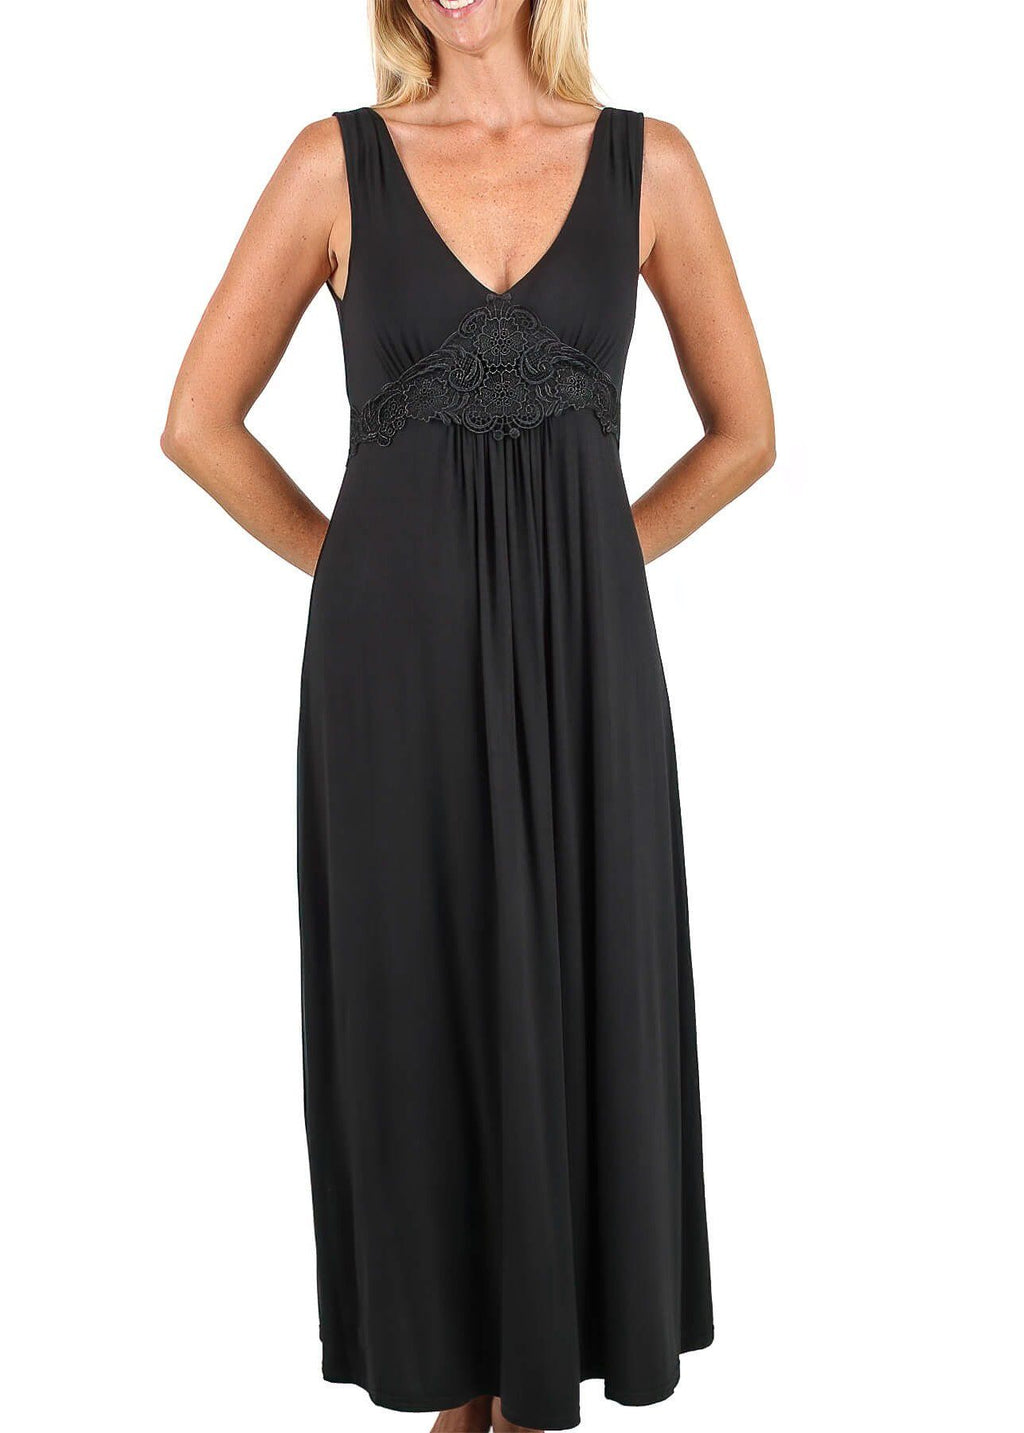 Dreamy Nightgown #30595 in Black